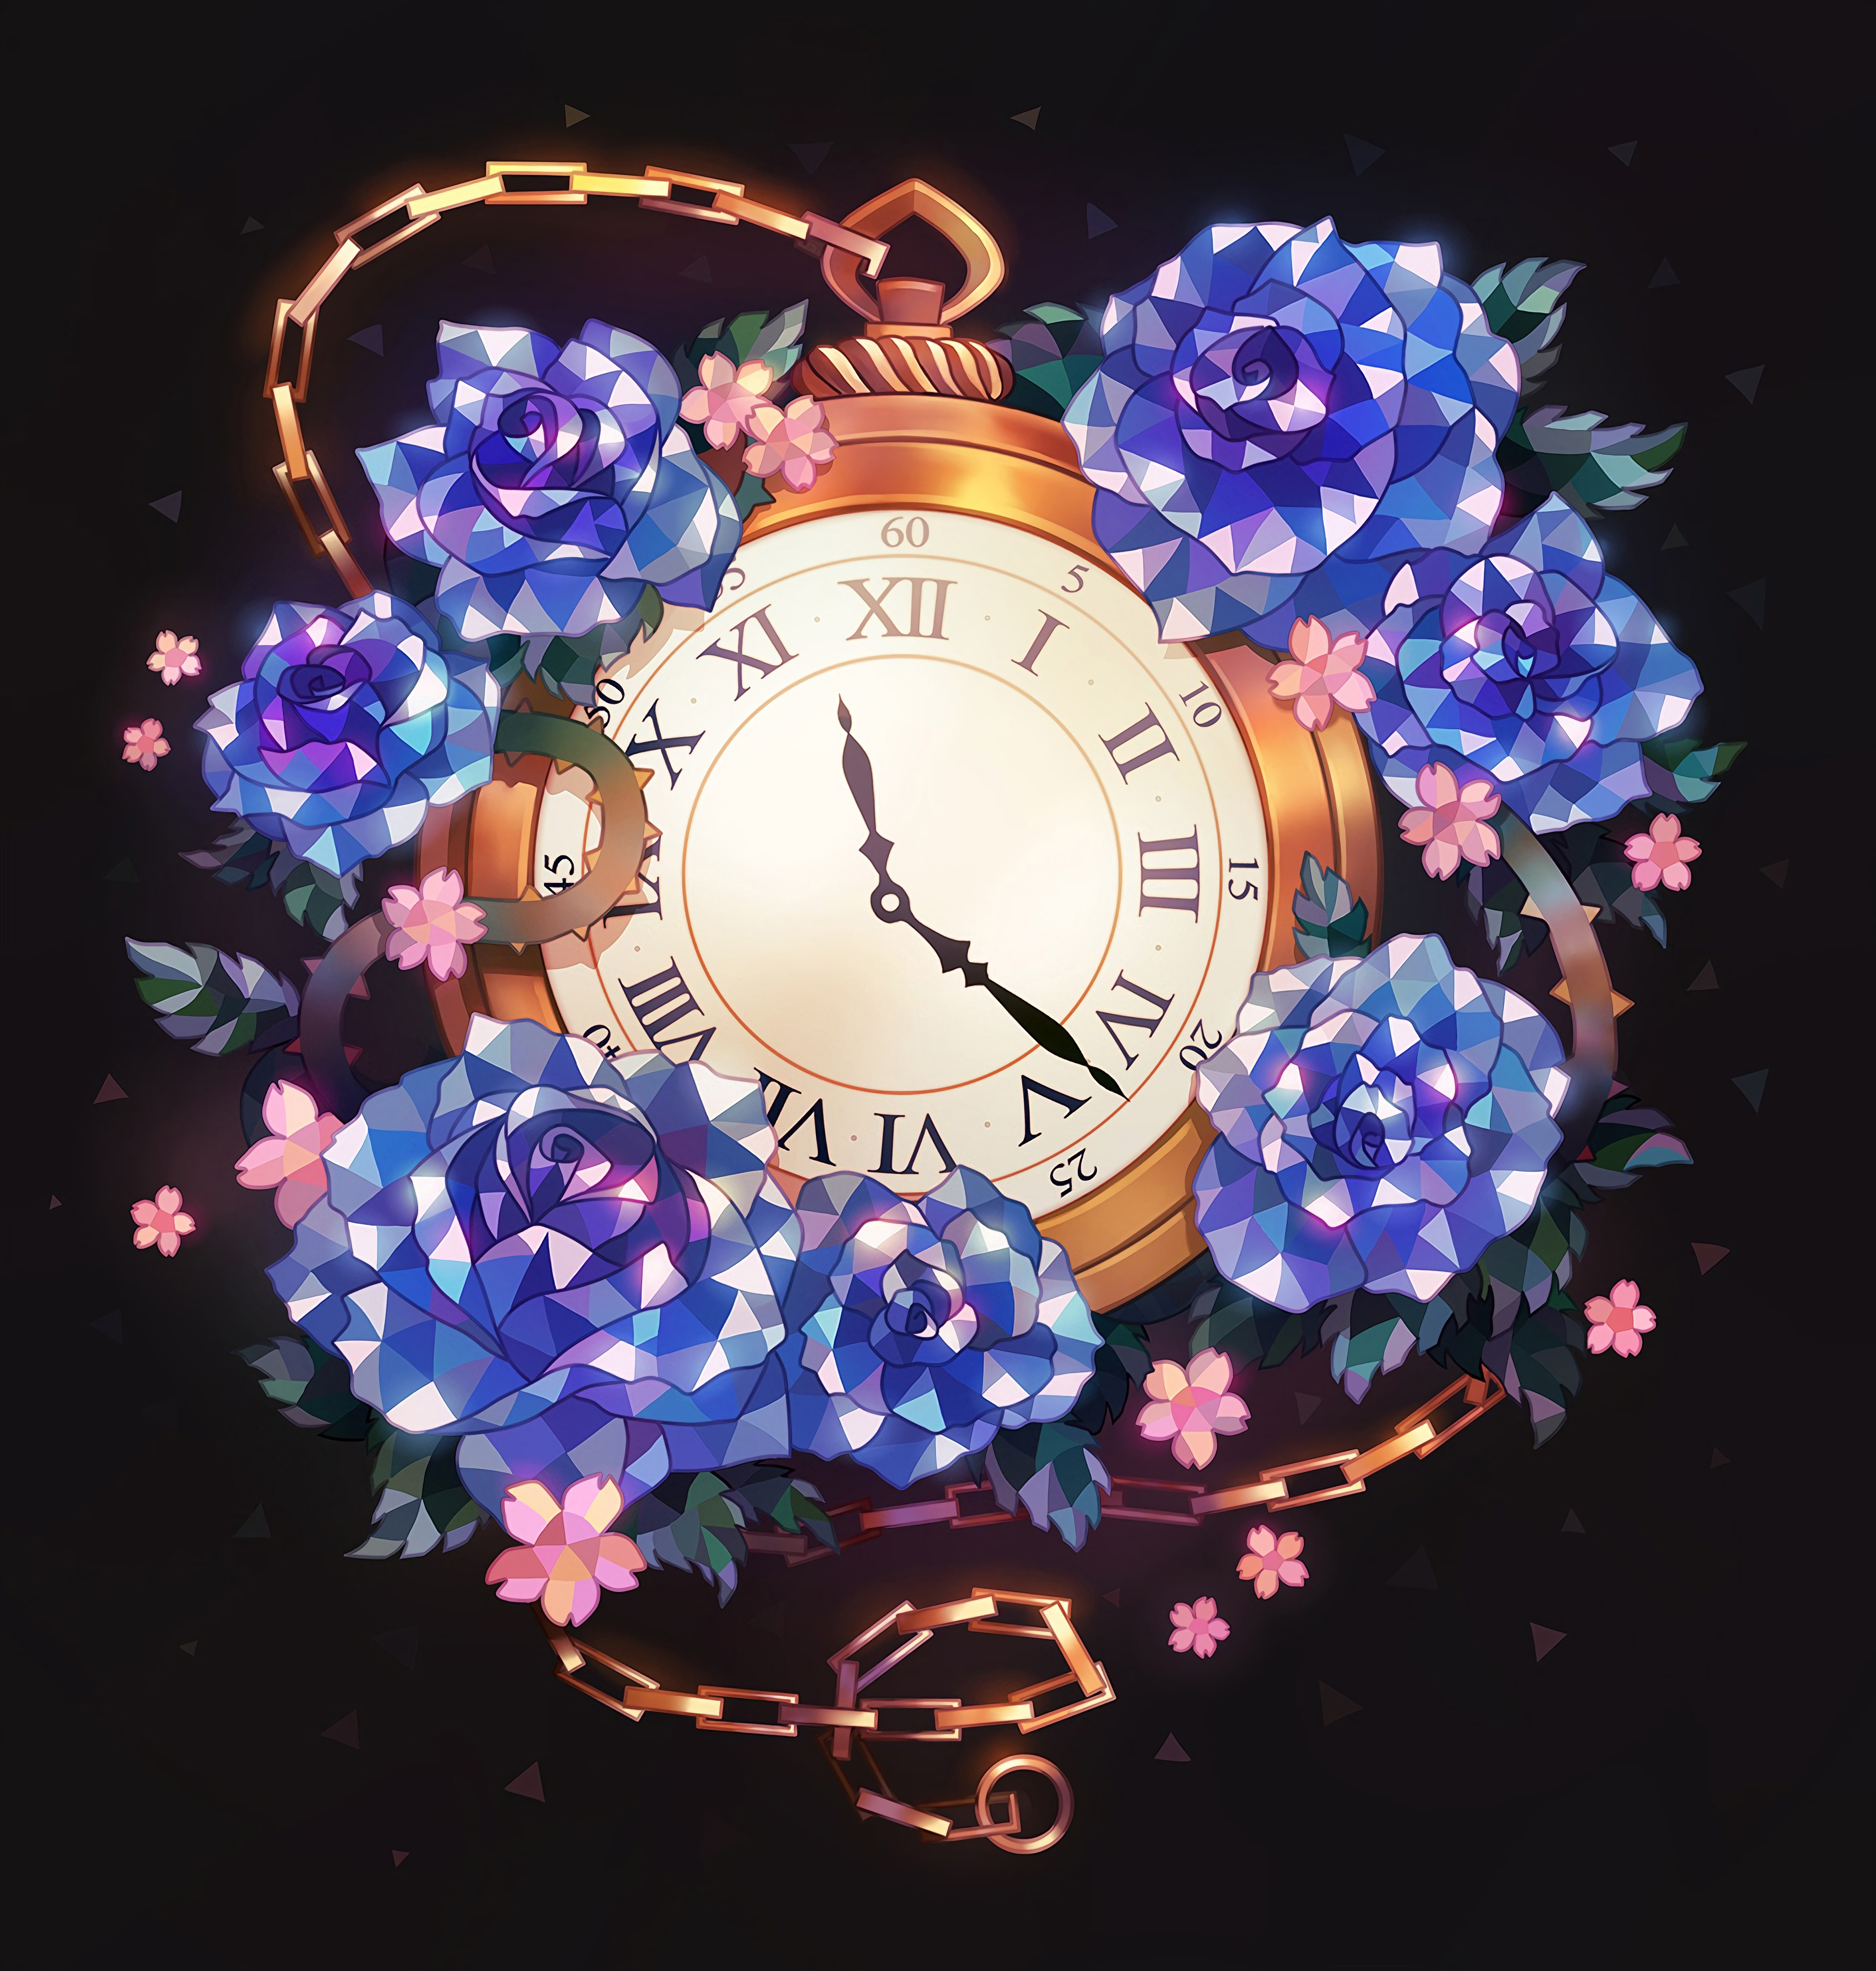 96009 download wallpaper Art, Pocket Watch, Chain, Flowers, Clock screensavers and pictures for free